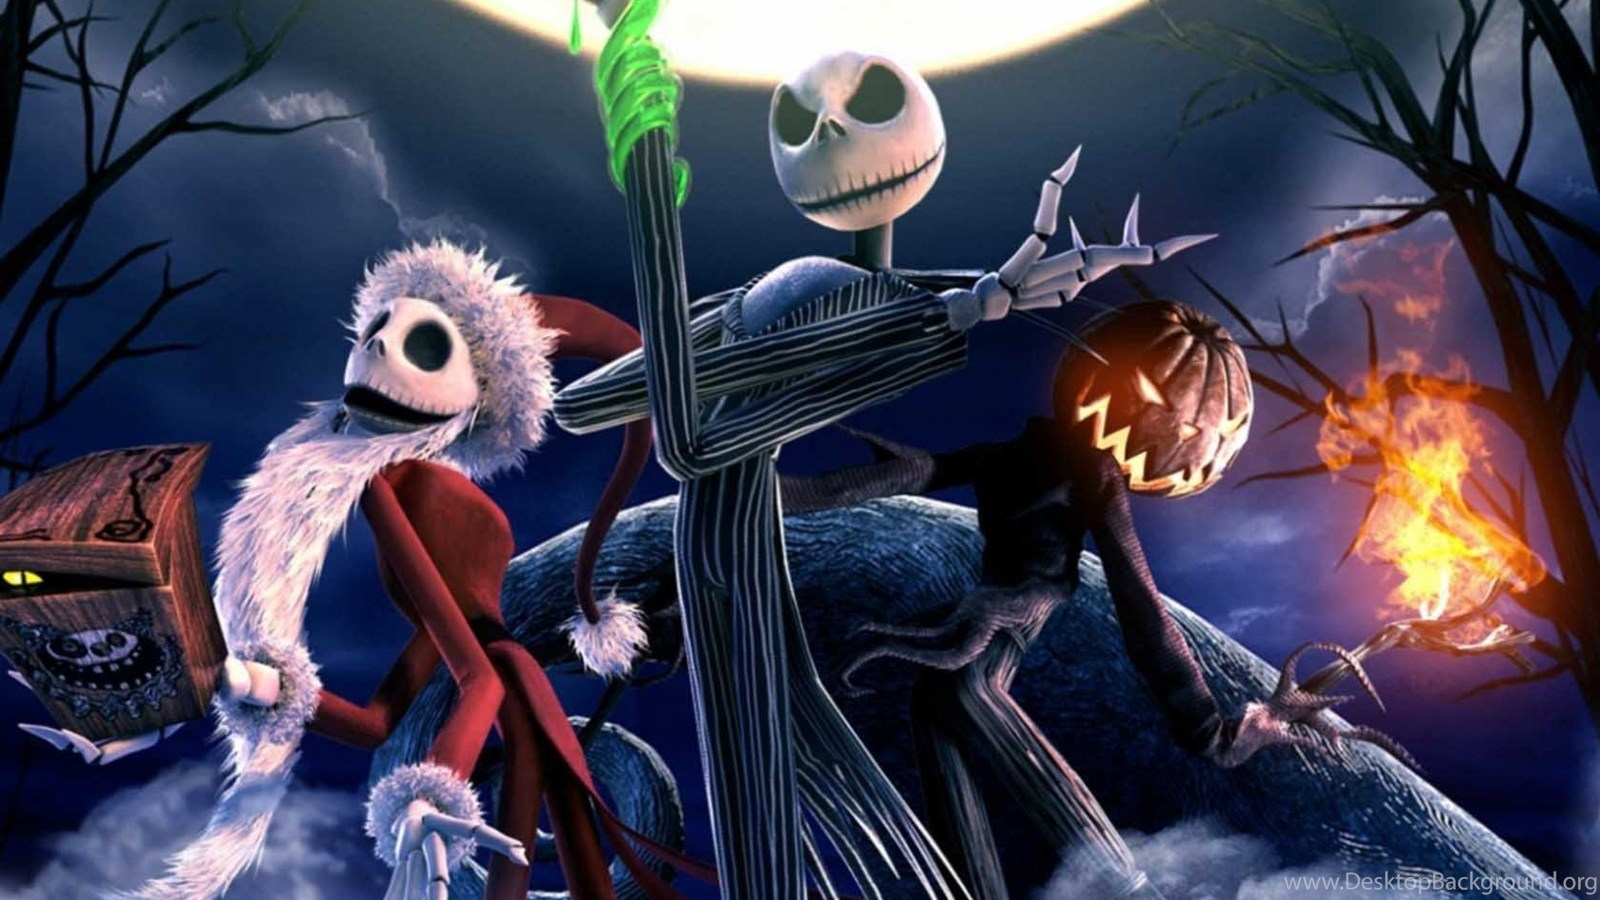 The Nightmare Before Christmas Wallpapers Hd Desktop Background